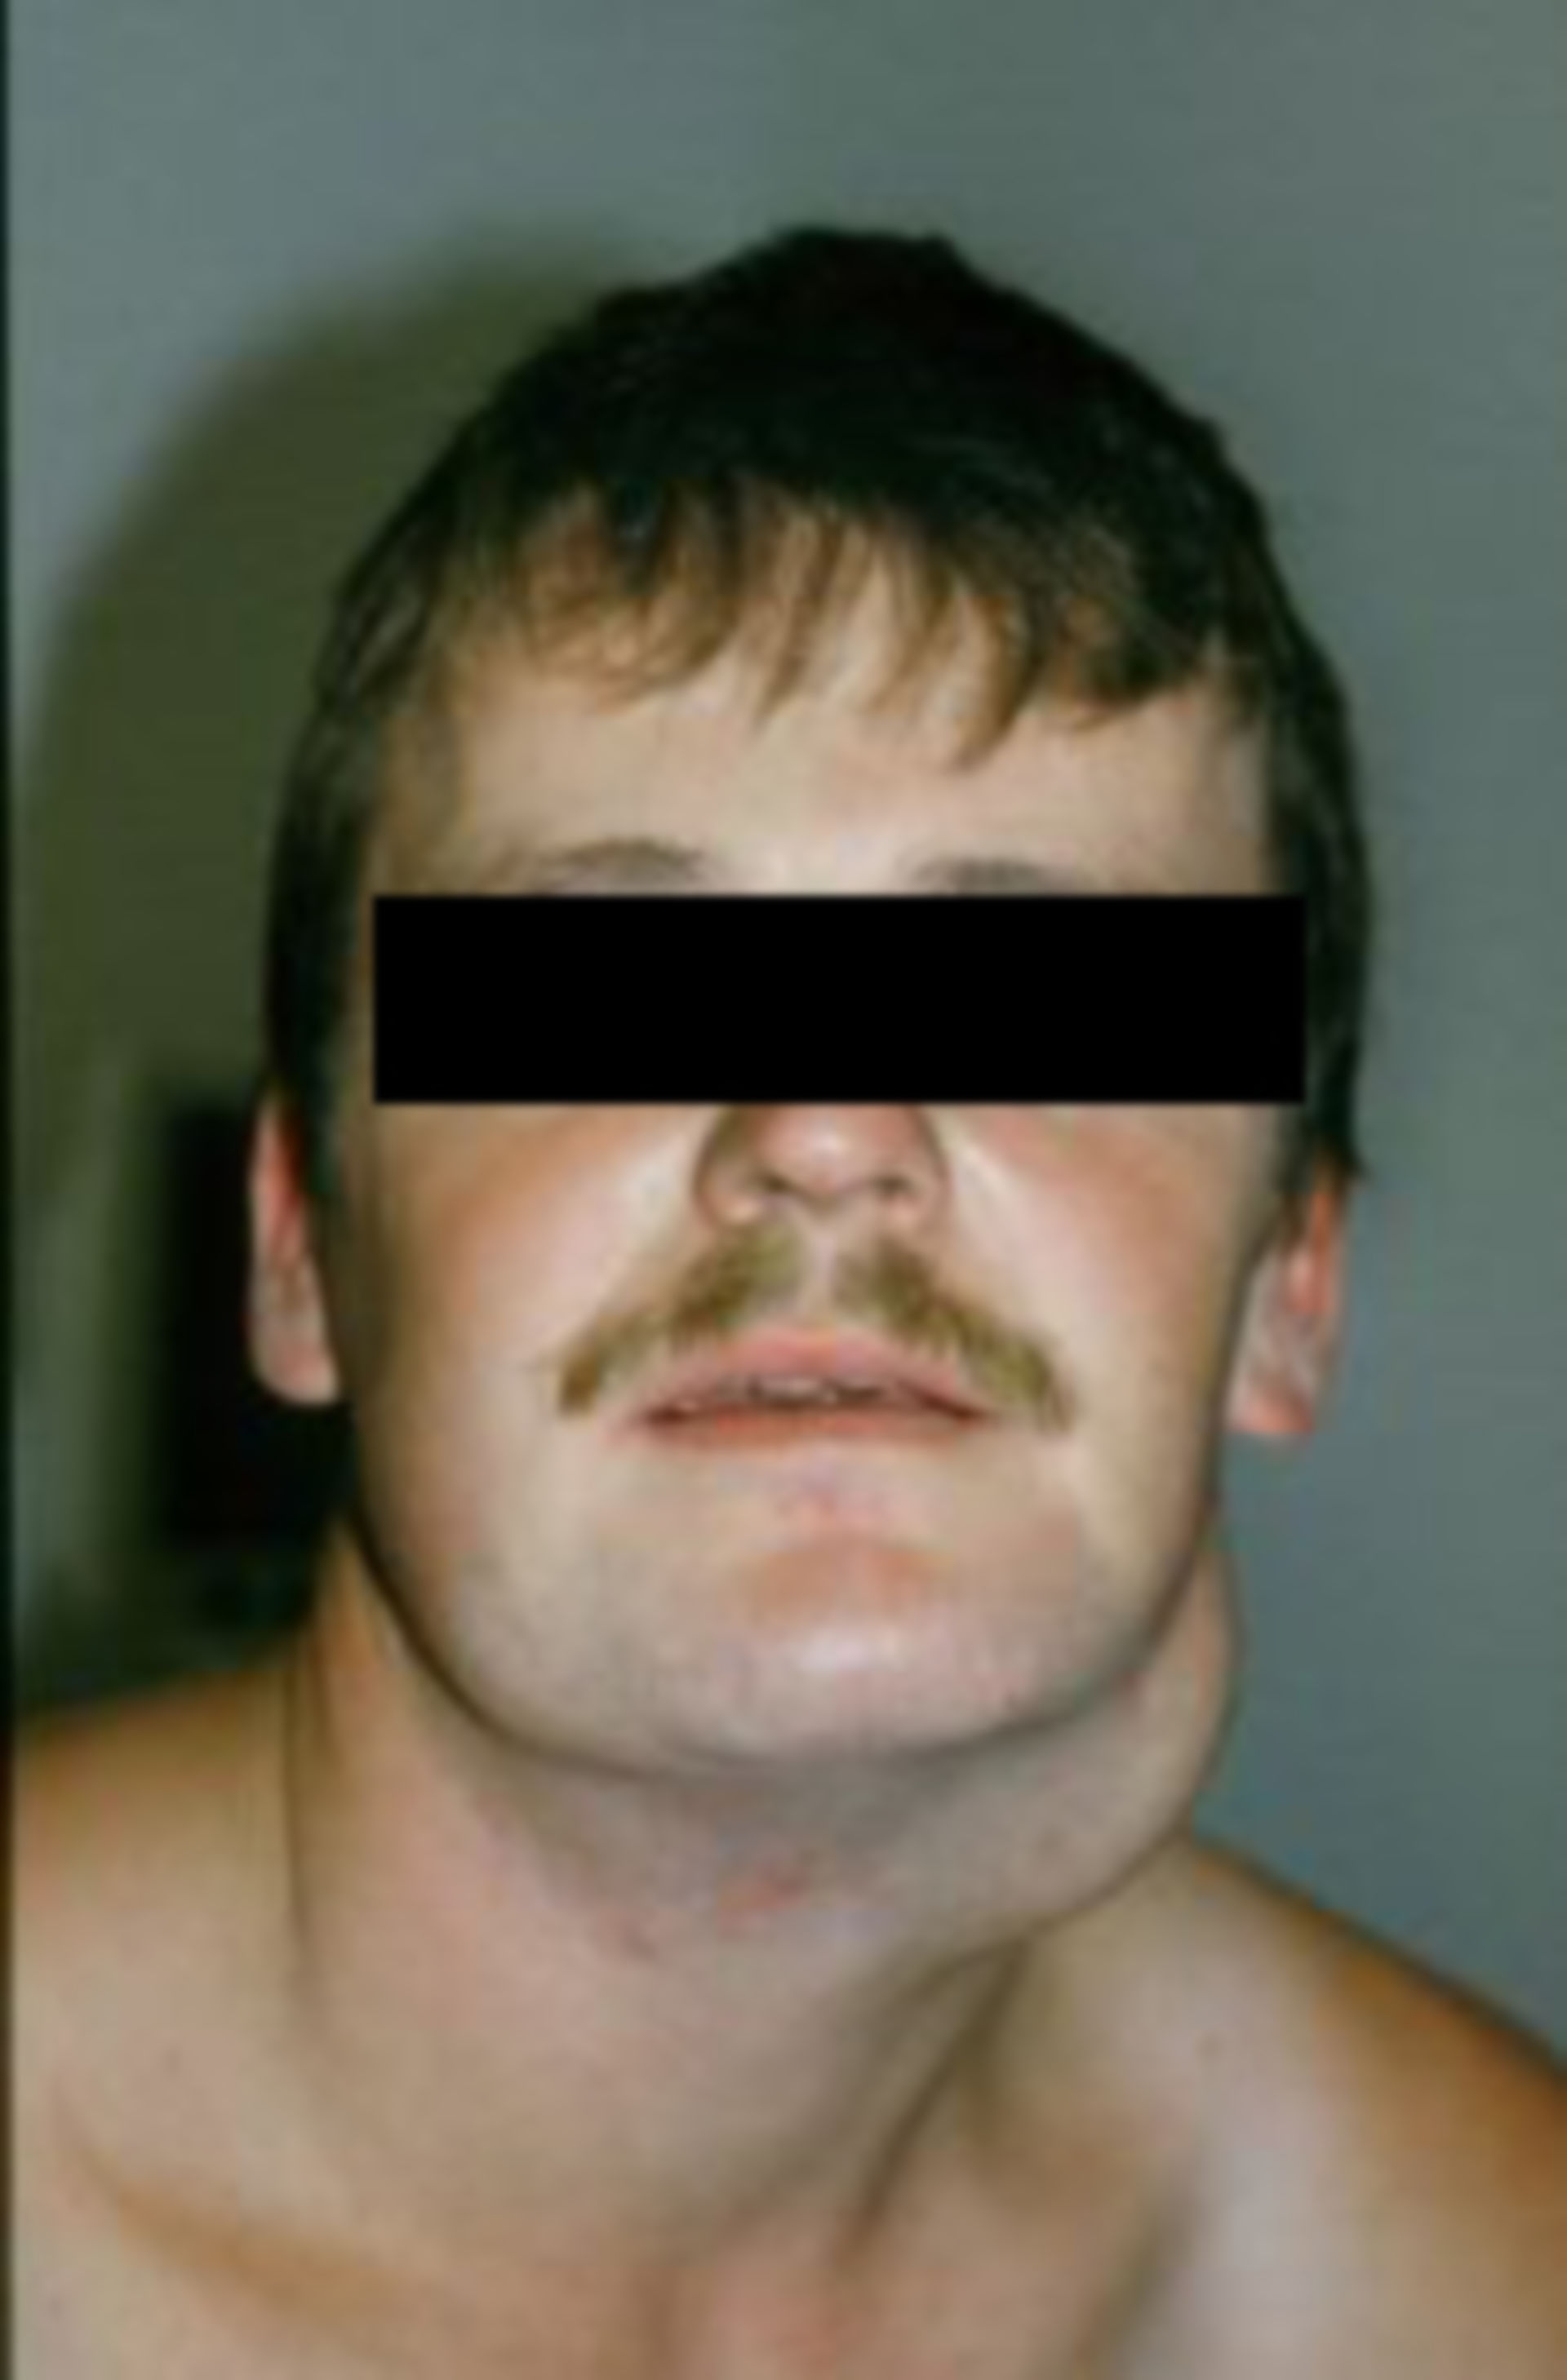 Patient with benign and large cyst on his neck